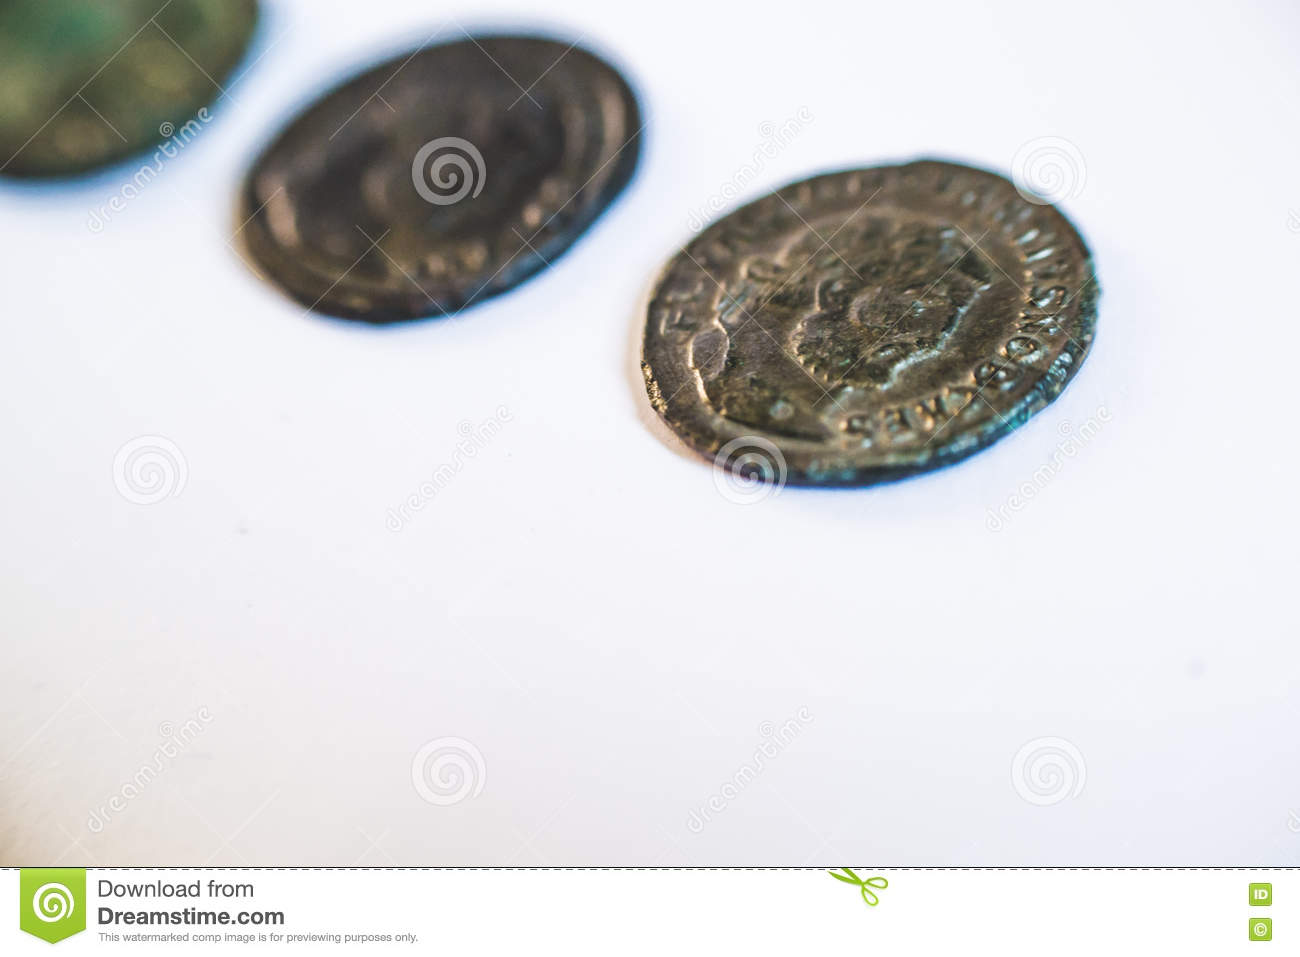 Roman Coins  Old Coins  Rare  Historical  Stock Photo - Image of